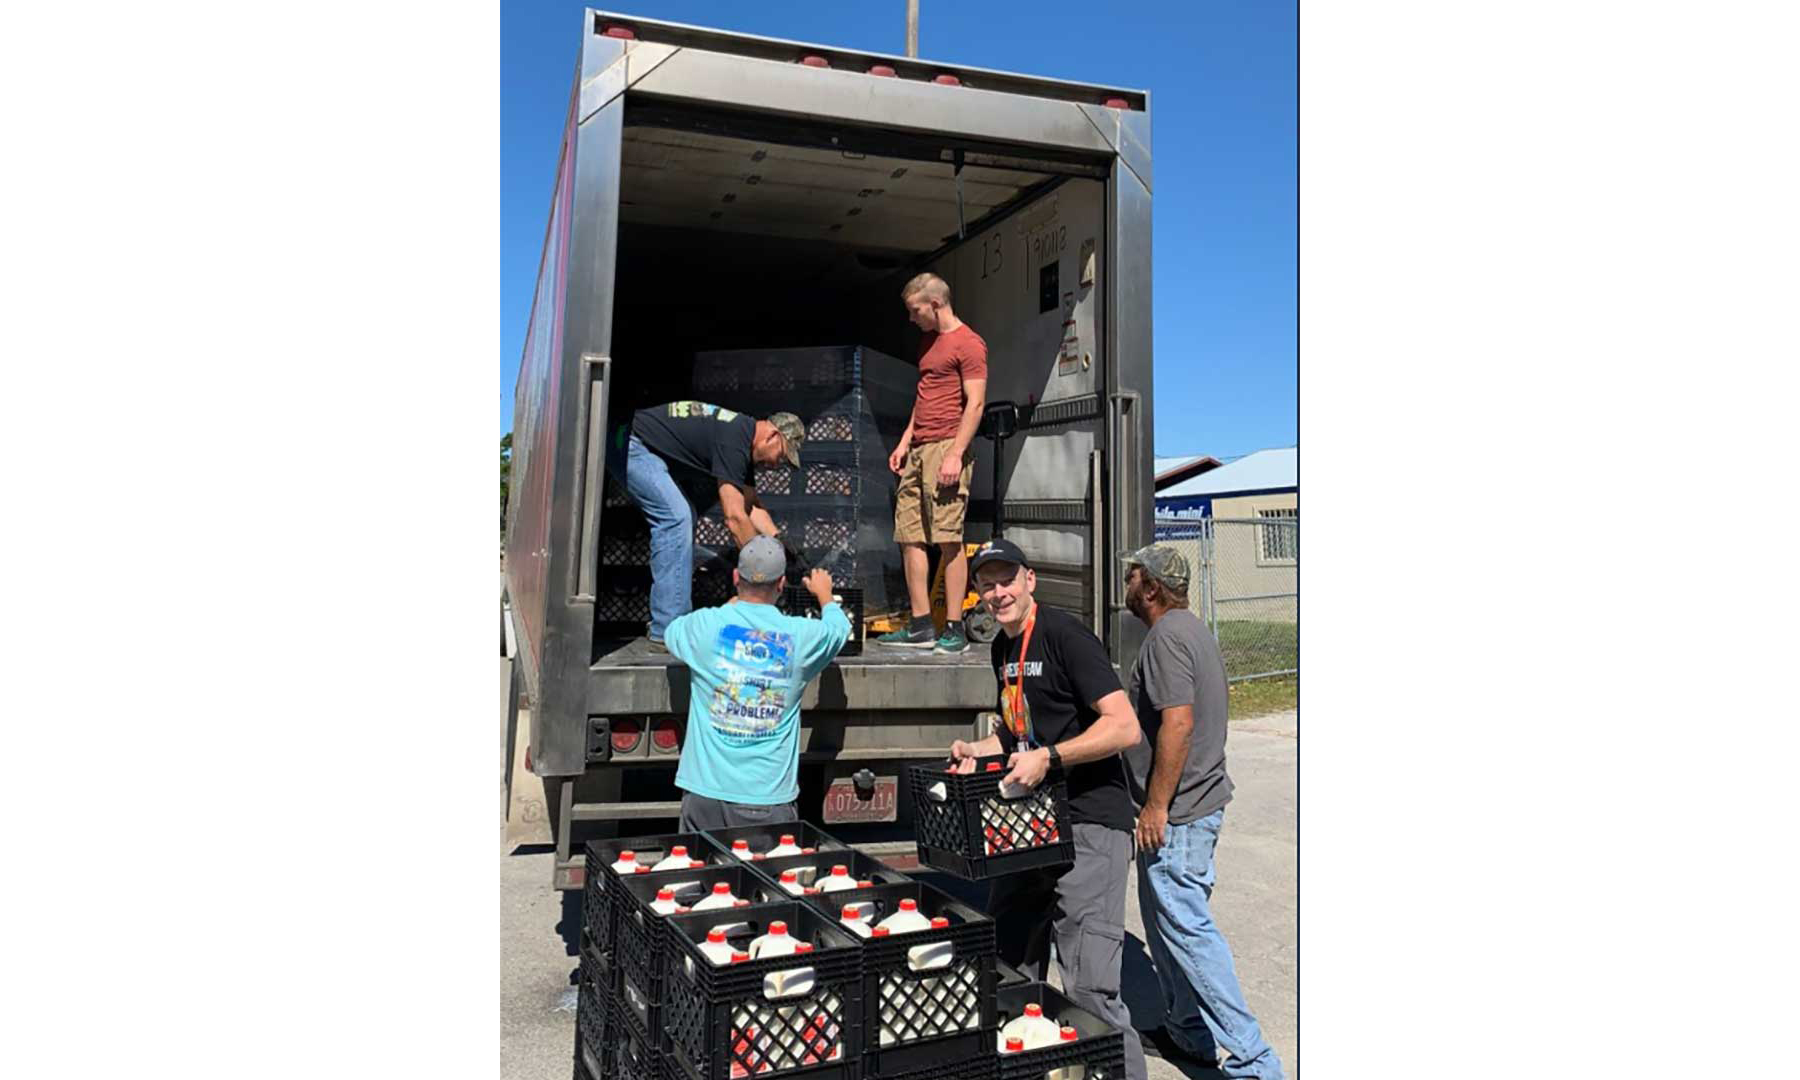 Borden drinks being unloaded off a truck.